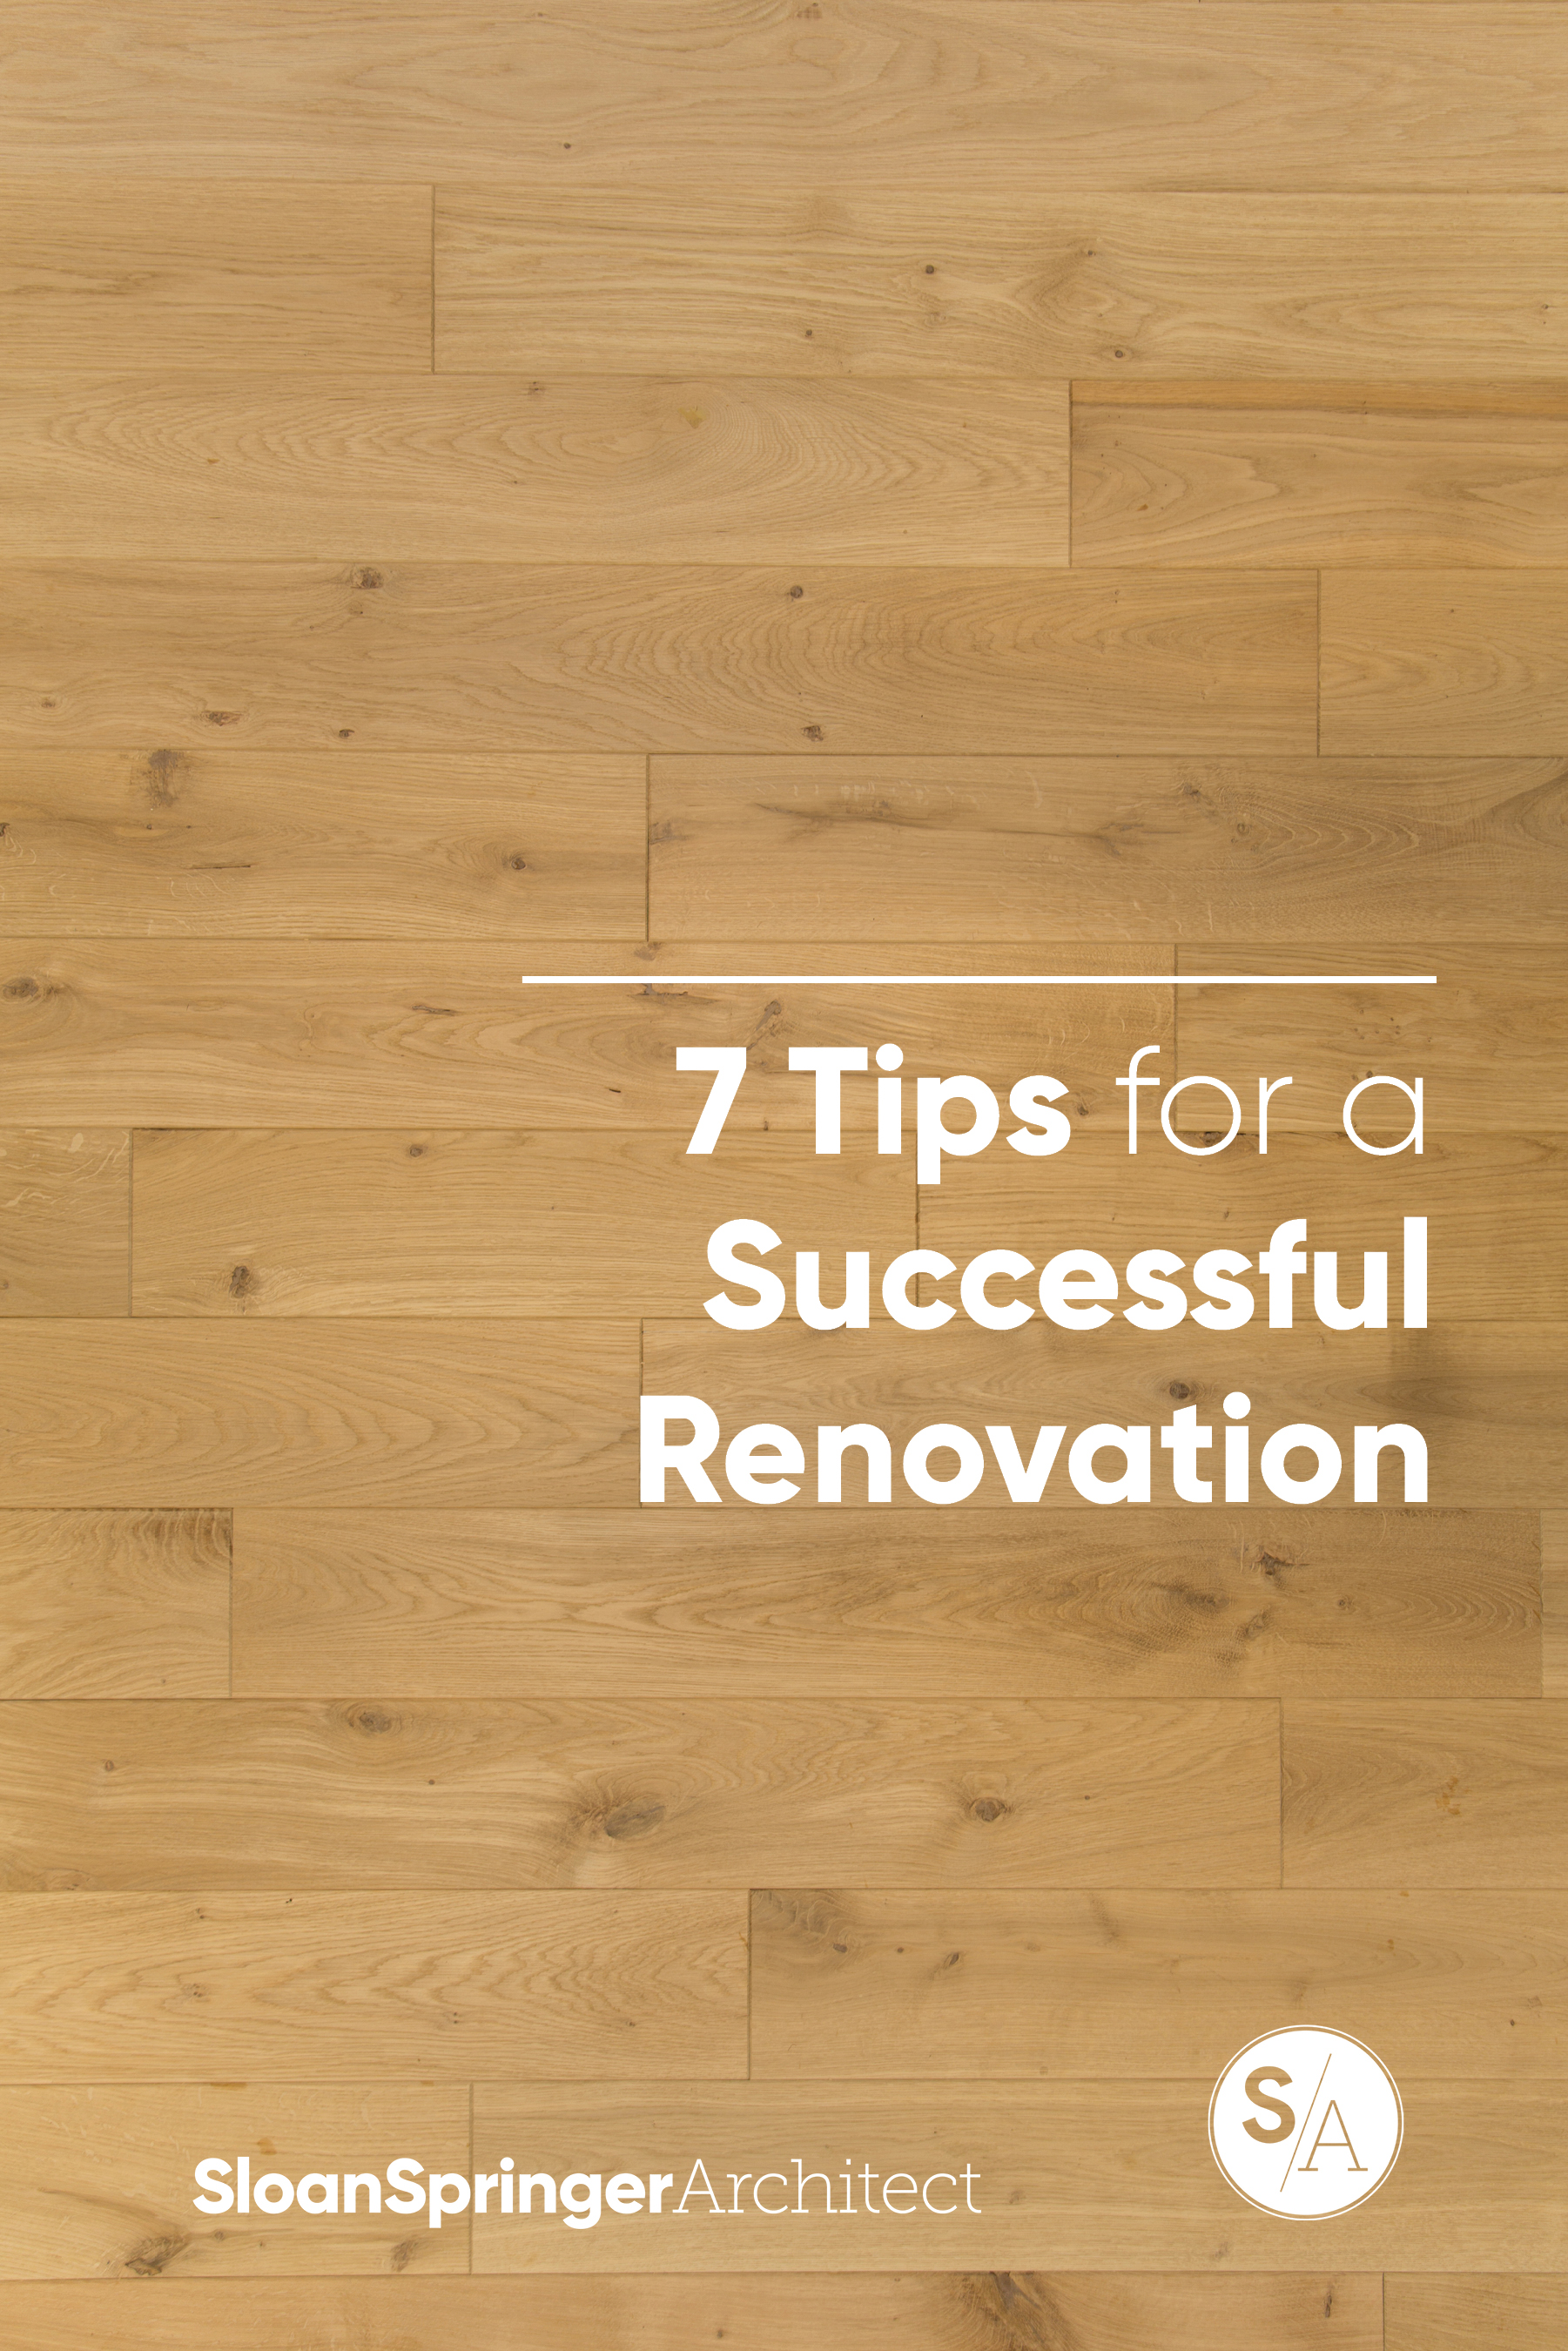 7 Tips for a Successful Renovation.jpg